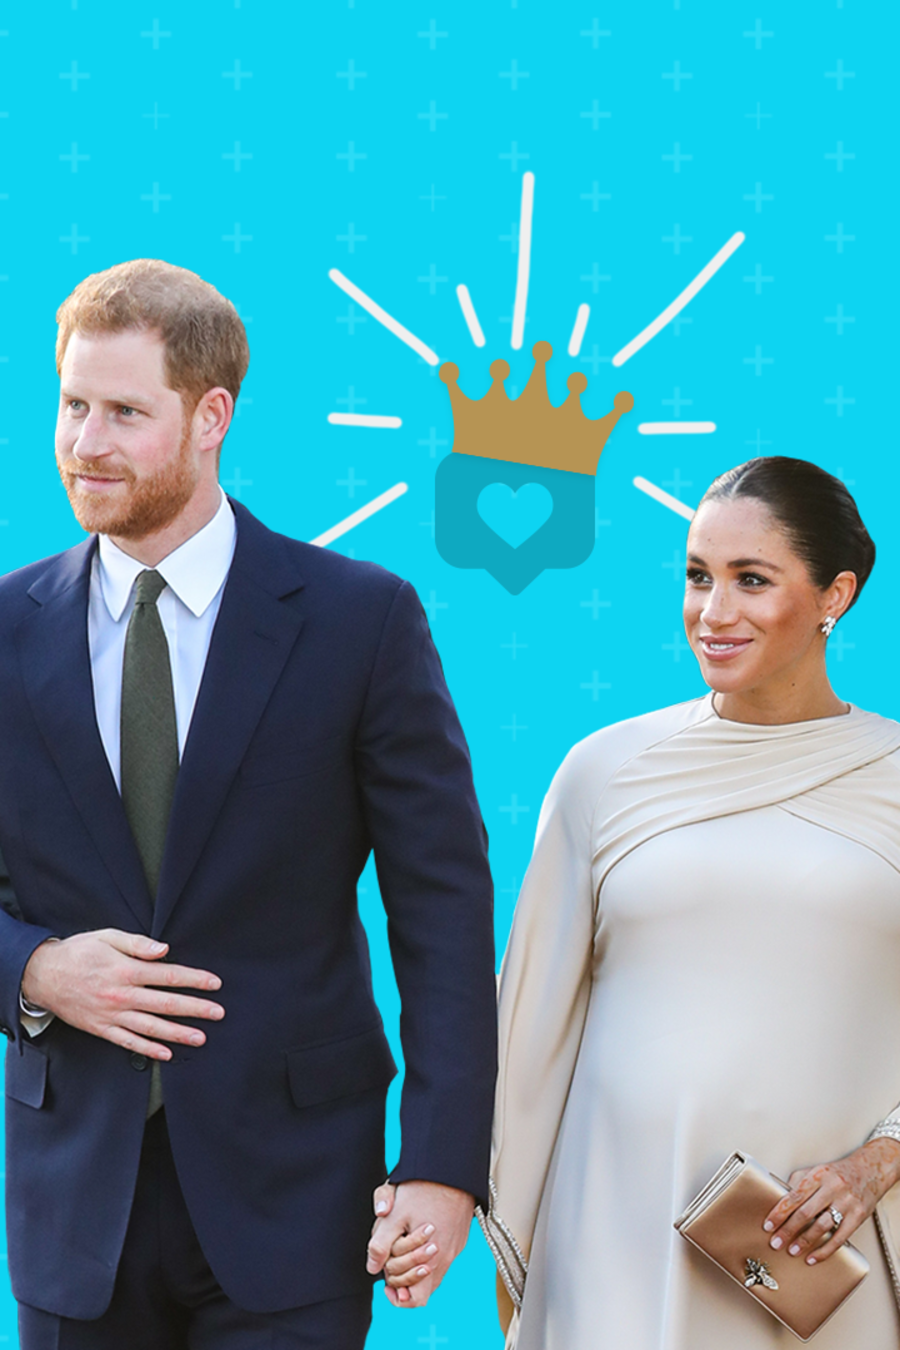 Prince Harry & Meghan Markle